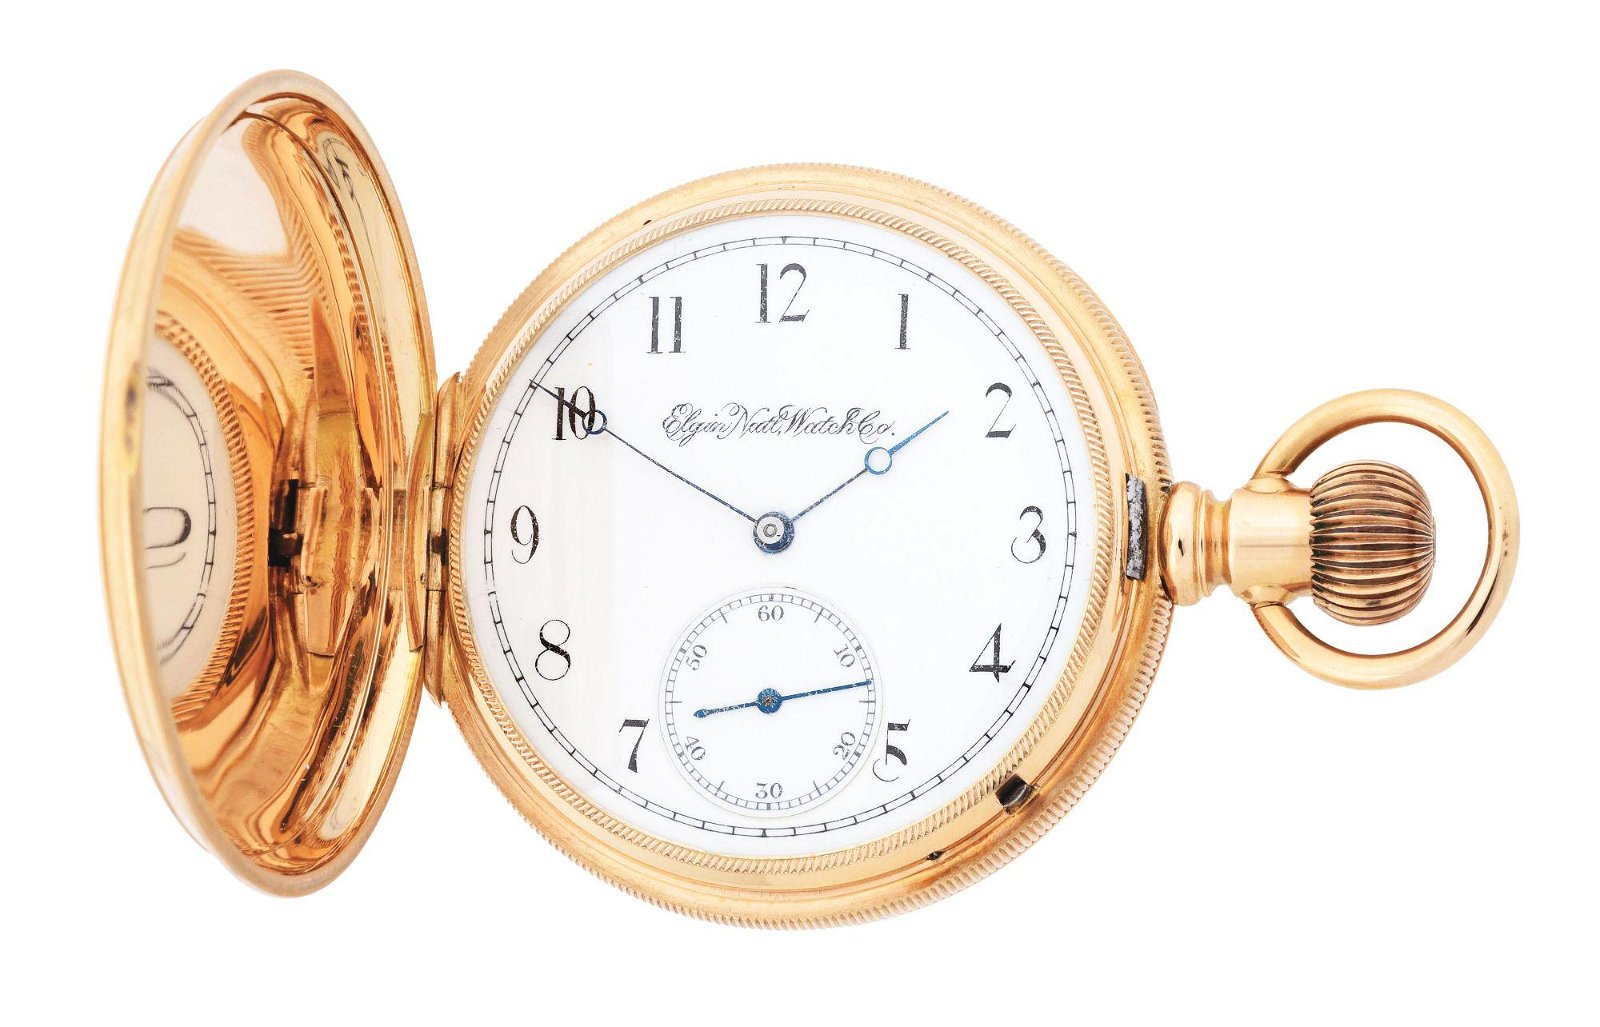 14K GOLD ELGIN H/C POCKET WATCH, CIRCA 1887.